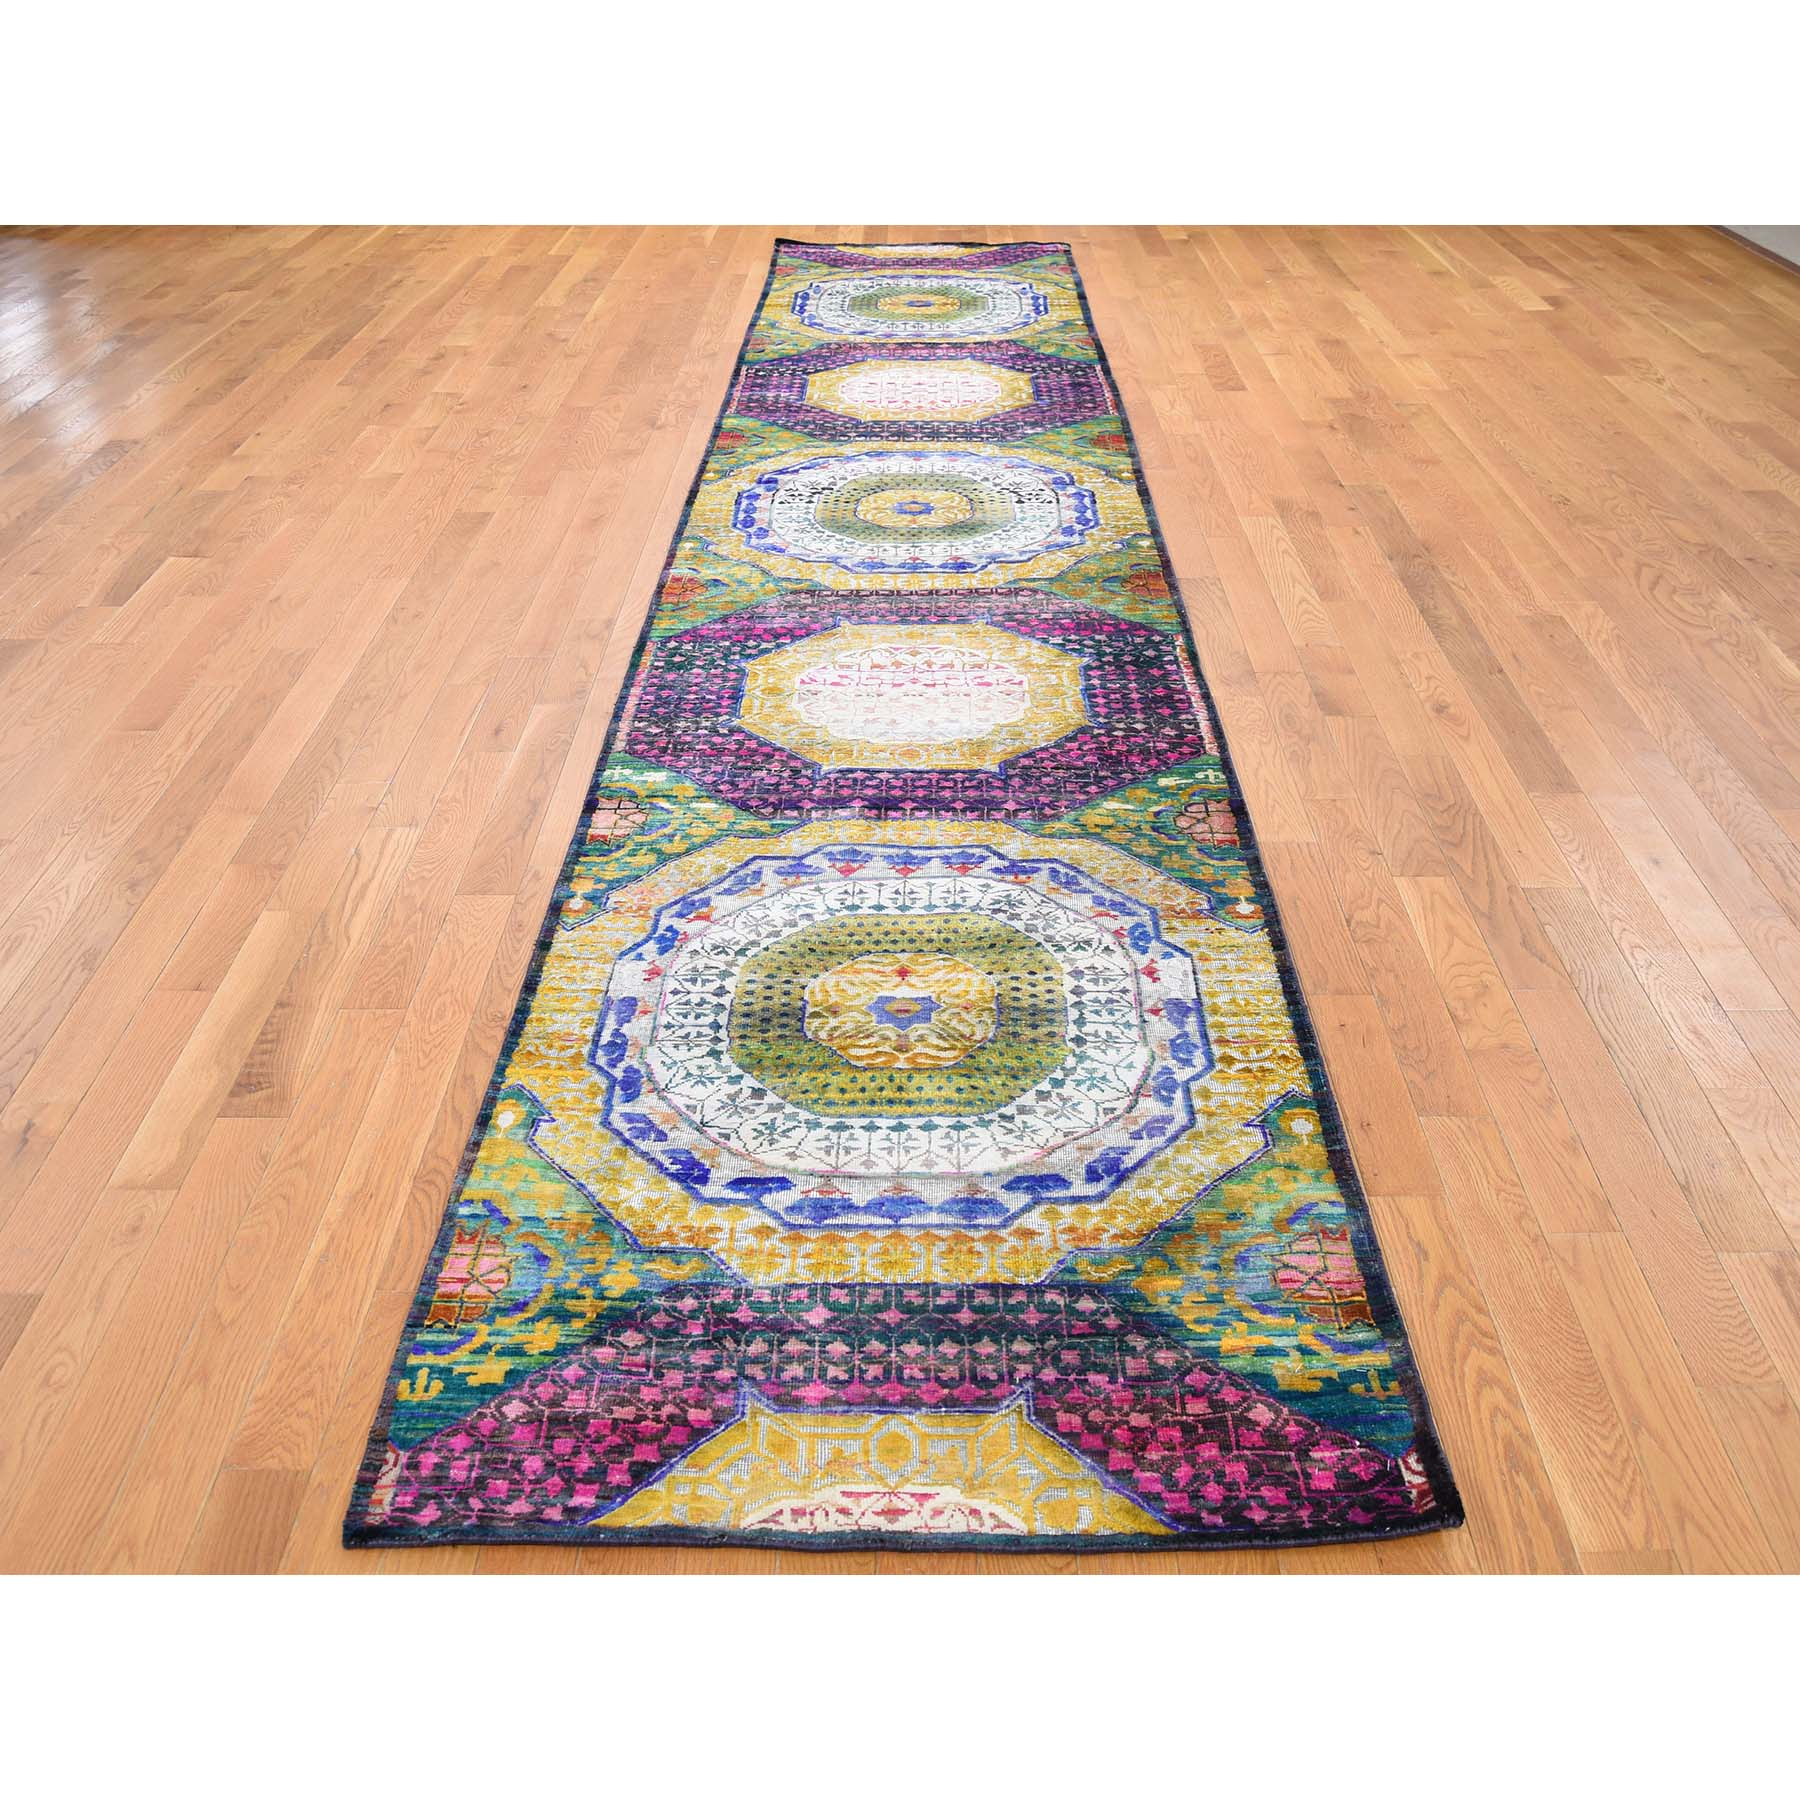 3-x16- Sari Silk With Oxidized Wool Mamluk Design XL Runner Hand-Knotted Oriental Rug